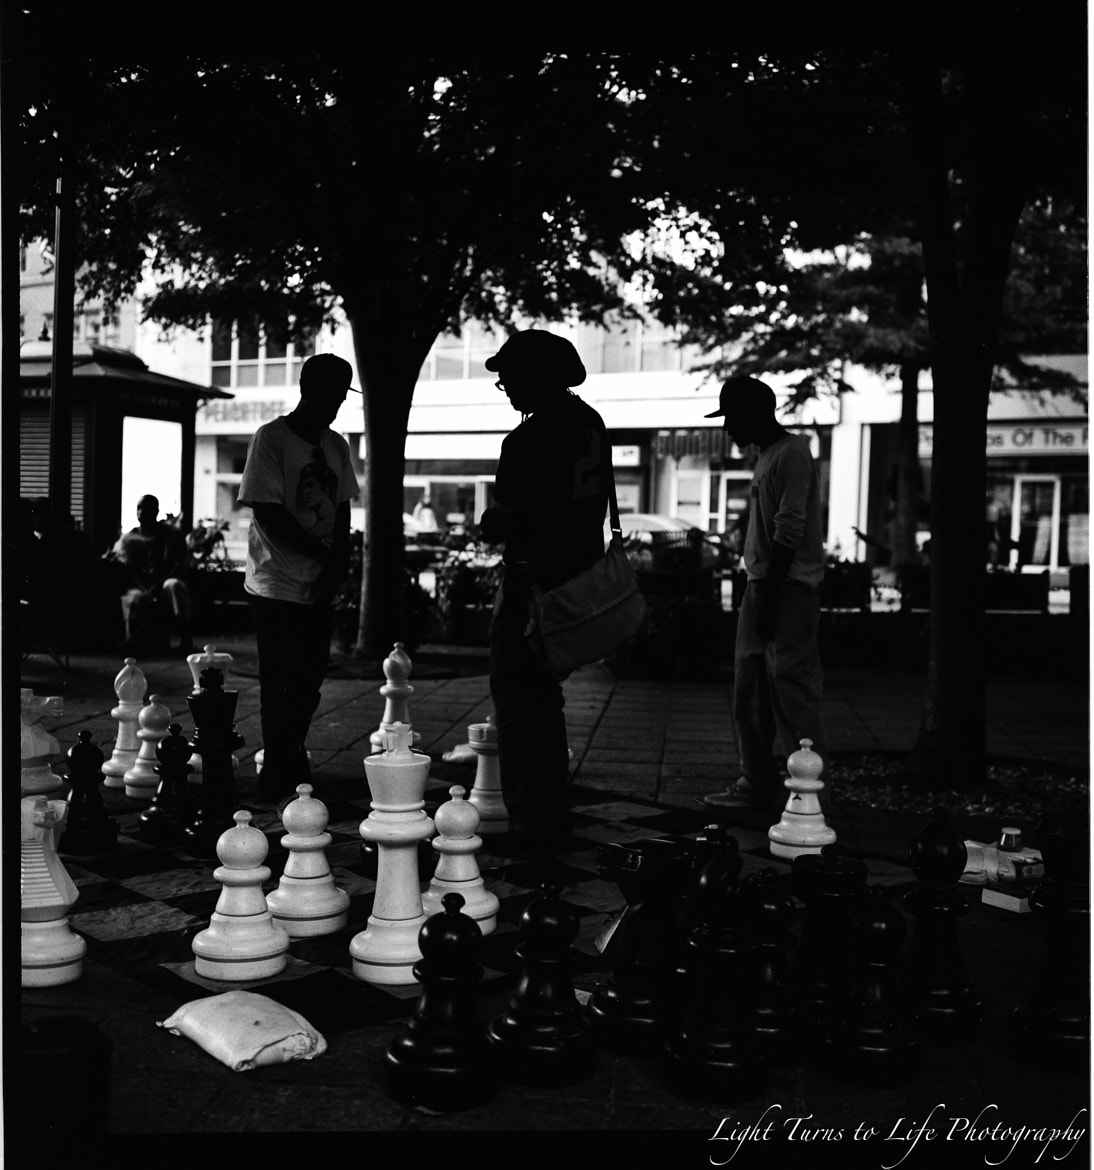 Photograph Chess in the Park by Vinson Smith on 500px